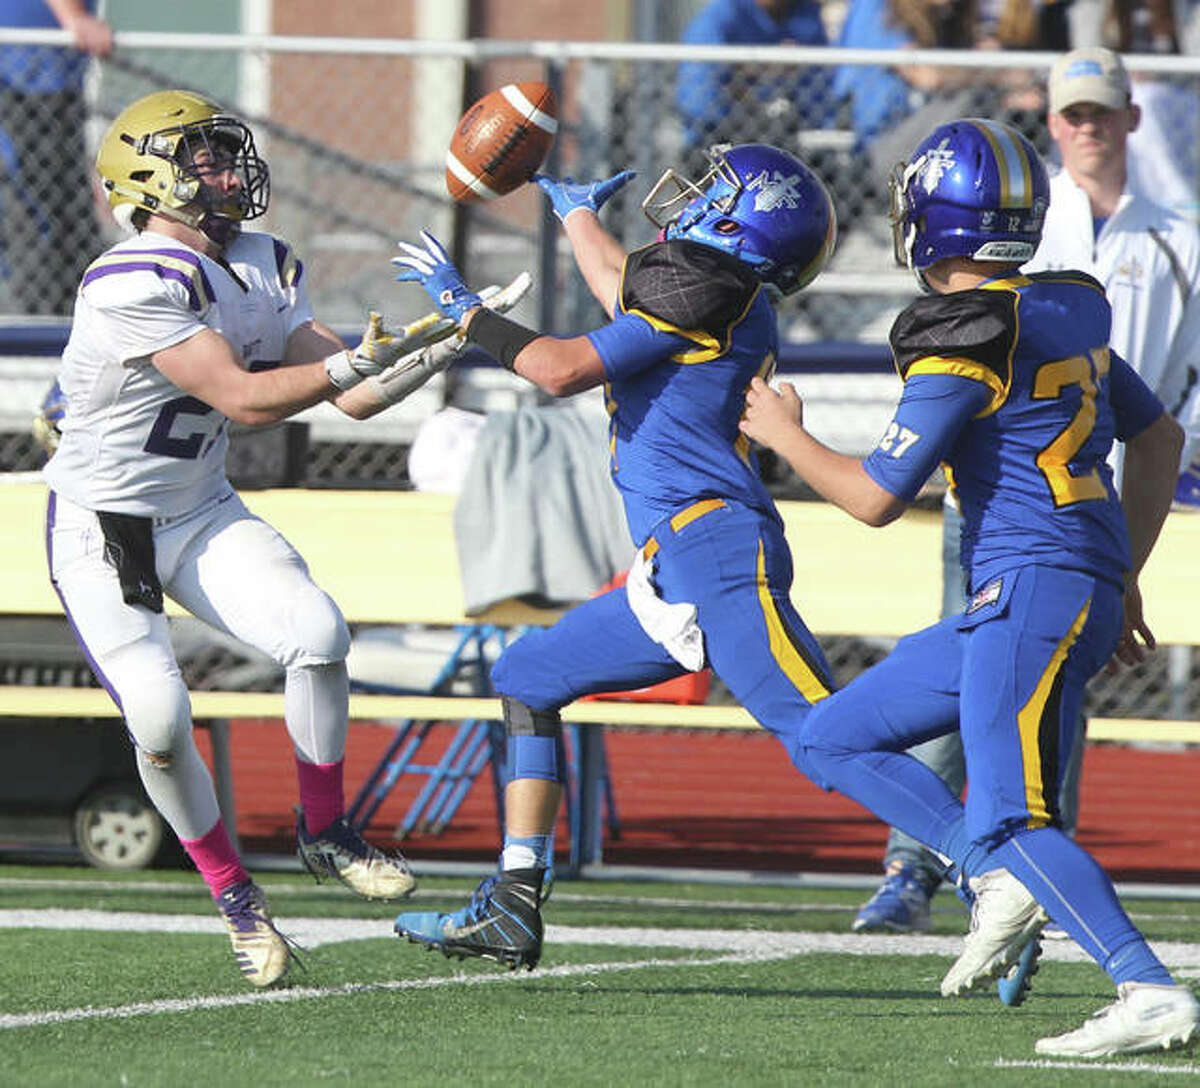 Routt's Alex Cosgriff reaches to make a catch in a game against Maroa-Forsyth during the first round of the Illinois High School Association Class 2A playoffs at Maroa on Saturday.